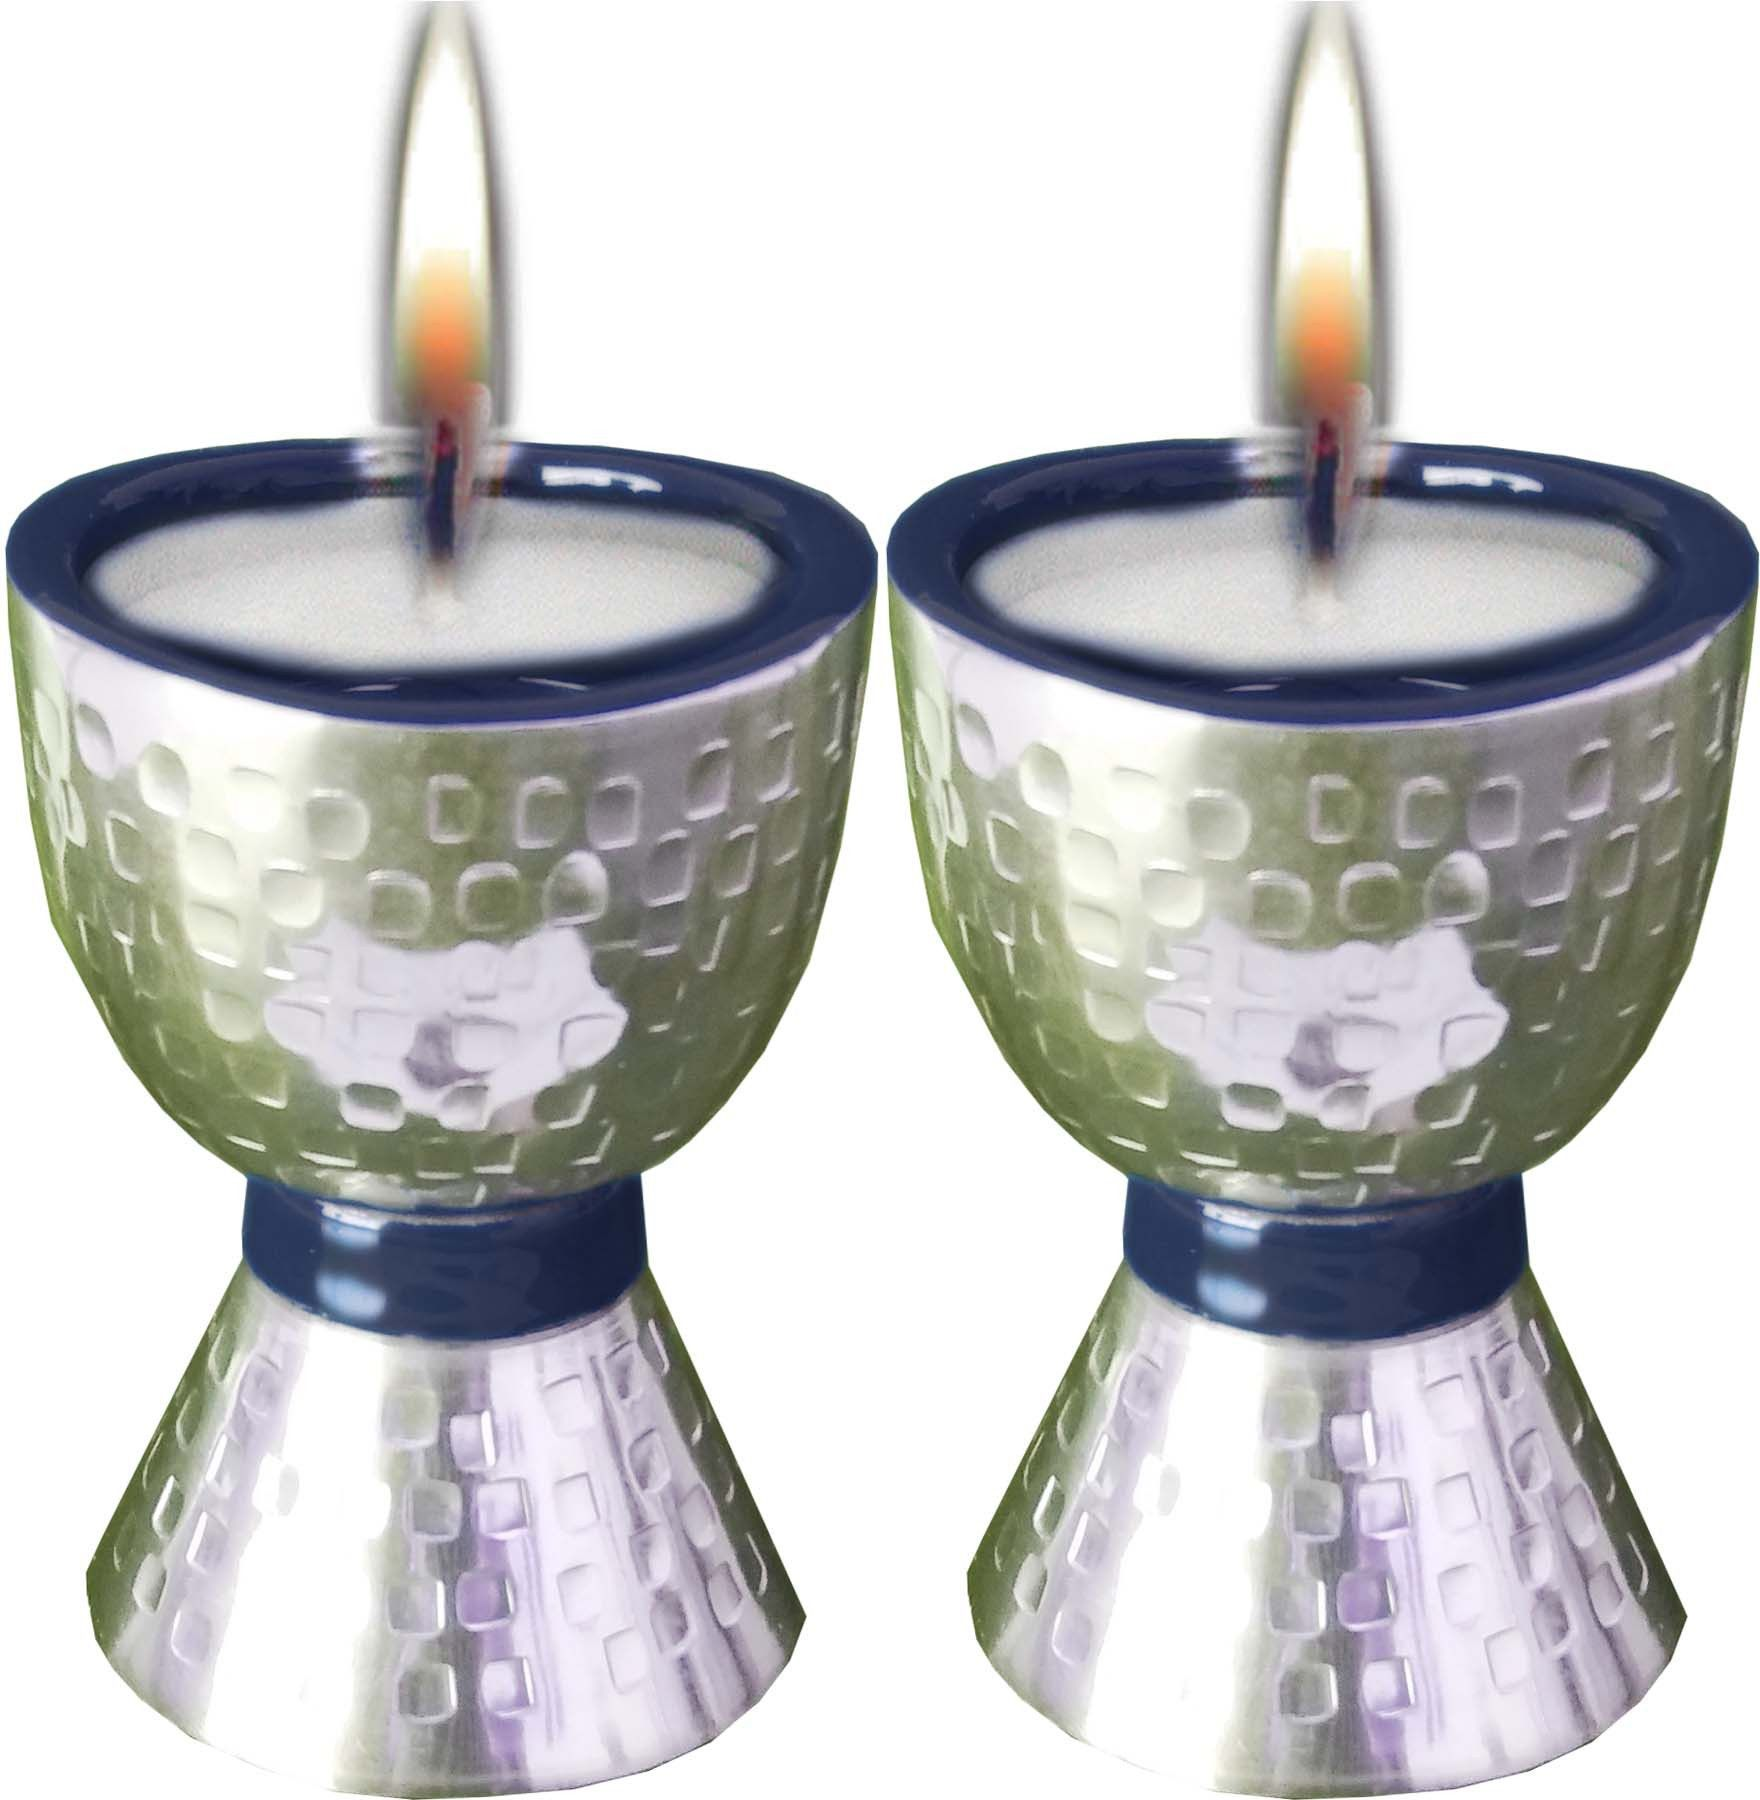 Candle Holders Hammered with Enamel Size 12*10 Cm. Weight 0.15 Kg.